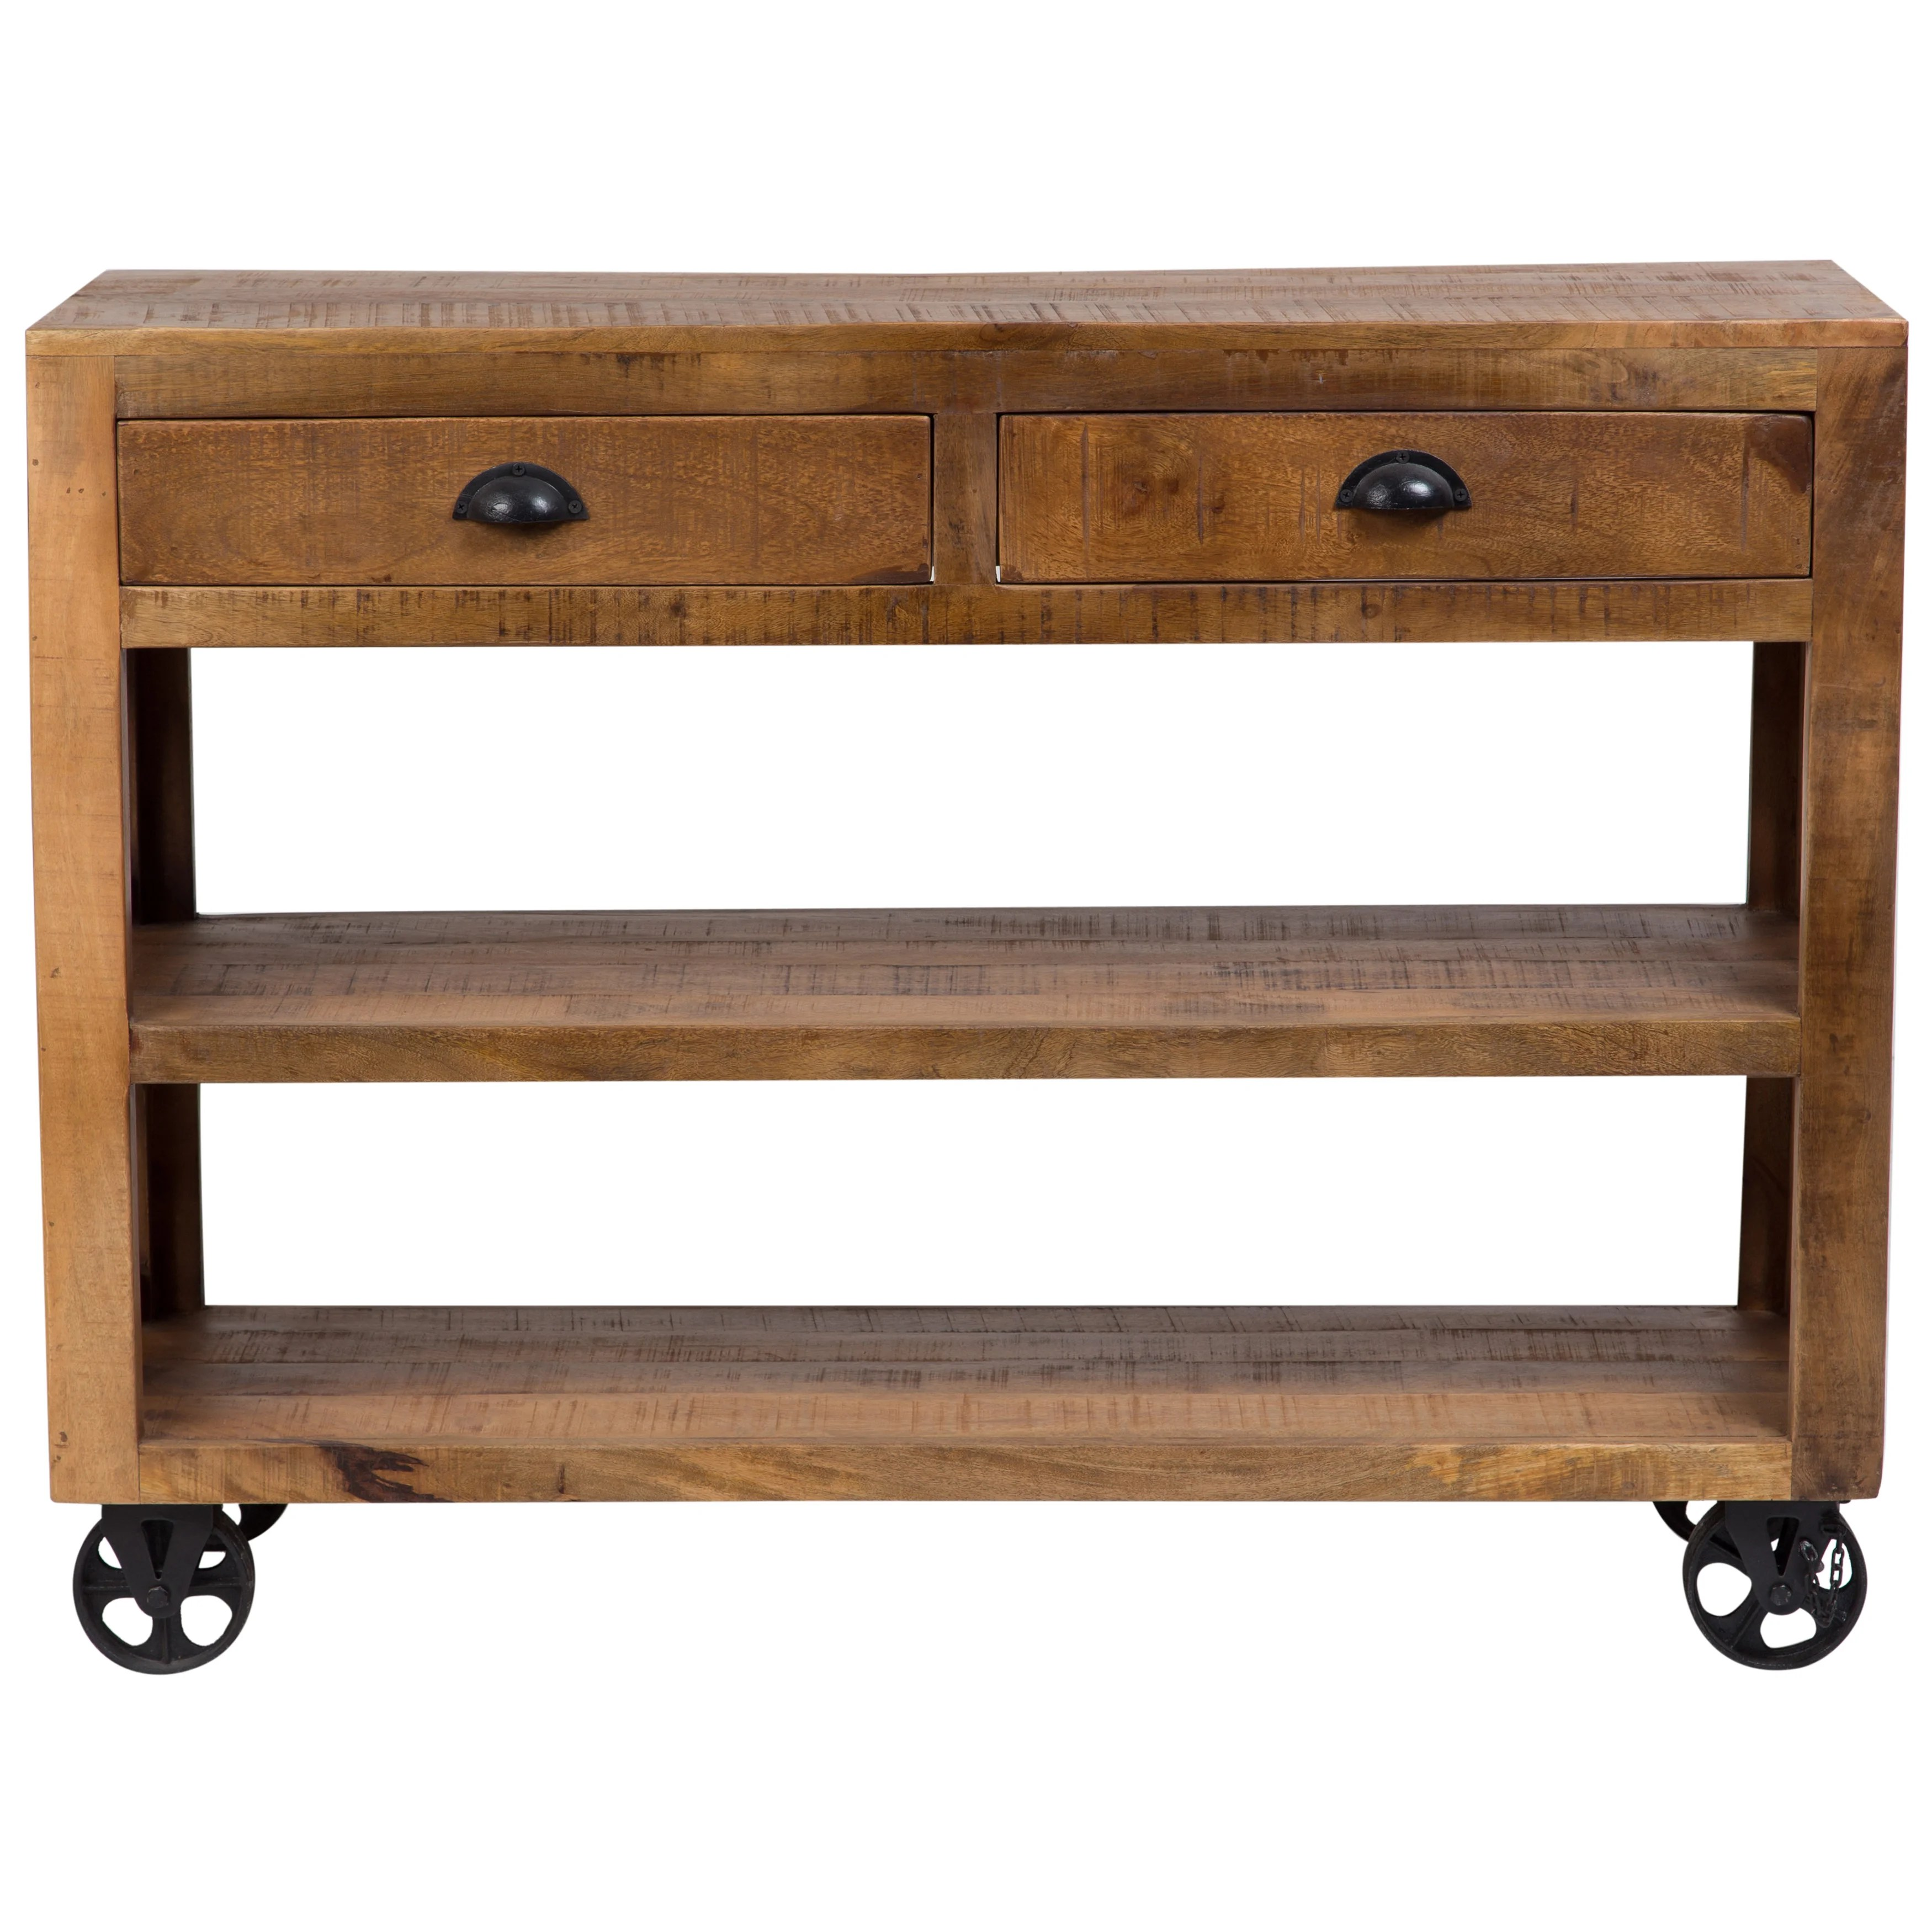 Barn Door Wheels Handmade Wanderloot Barn Door Wooden Trolley Console Table With 2 Shelves And 2 Drawers And Cast Iron Wheels India